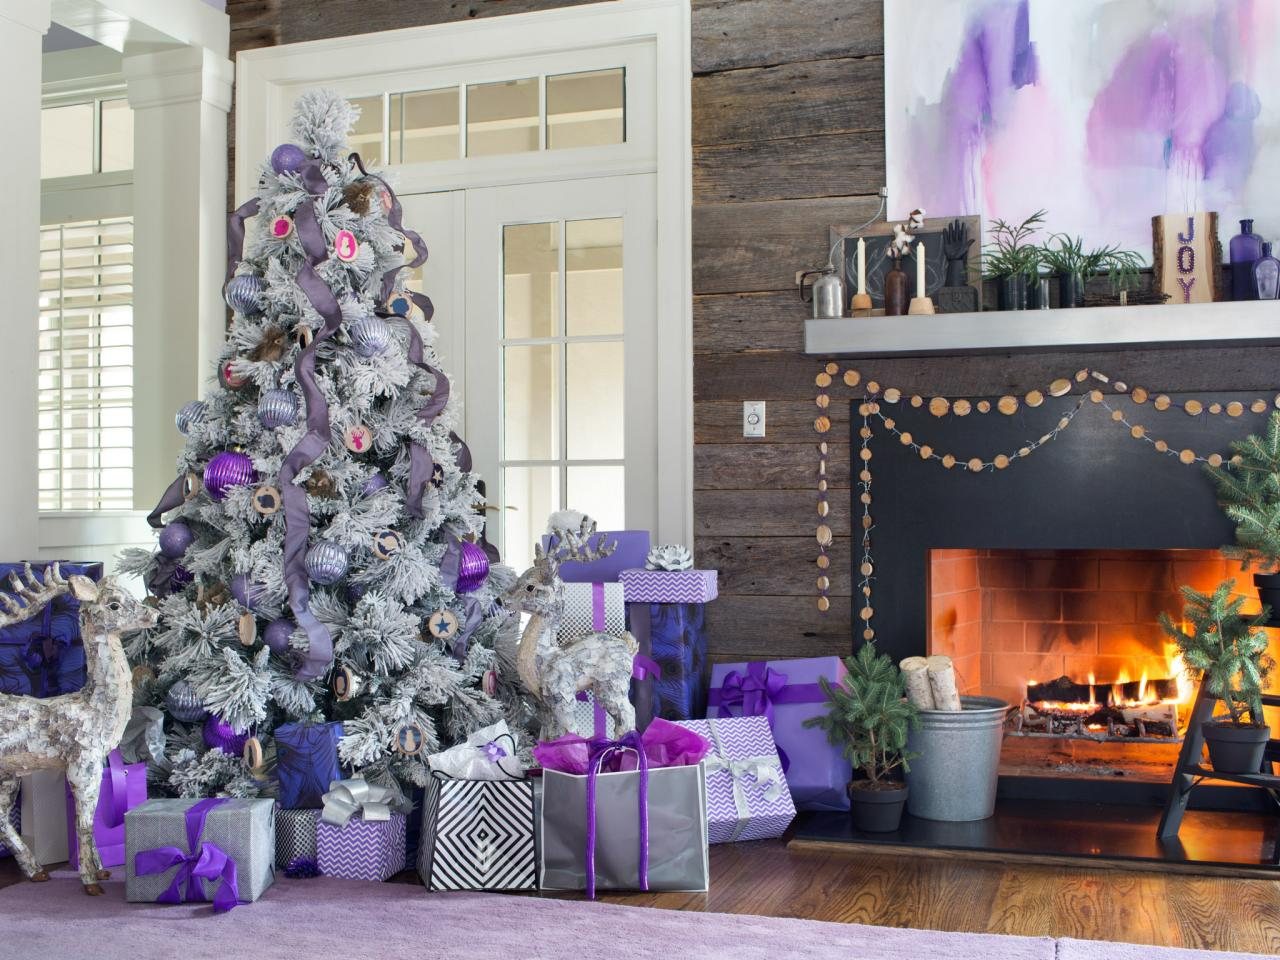 purple-and-white-holiday-decor